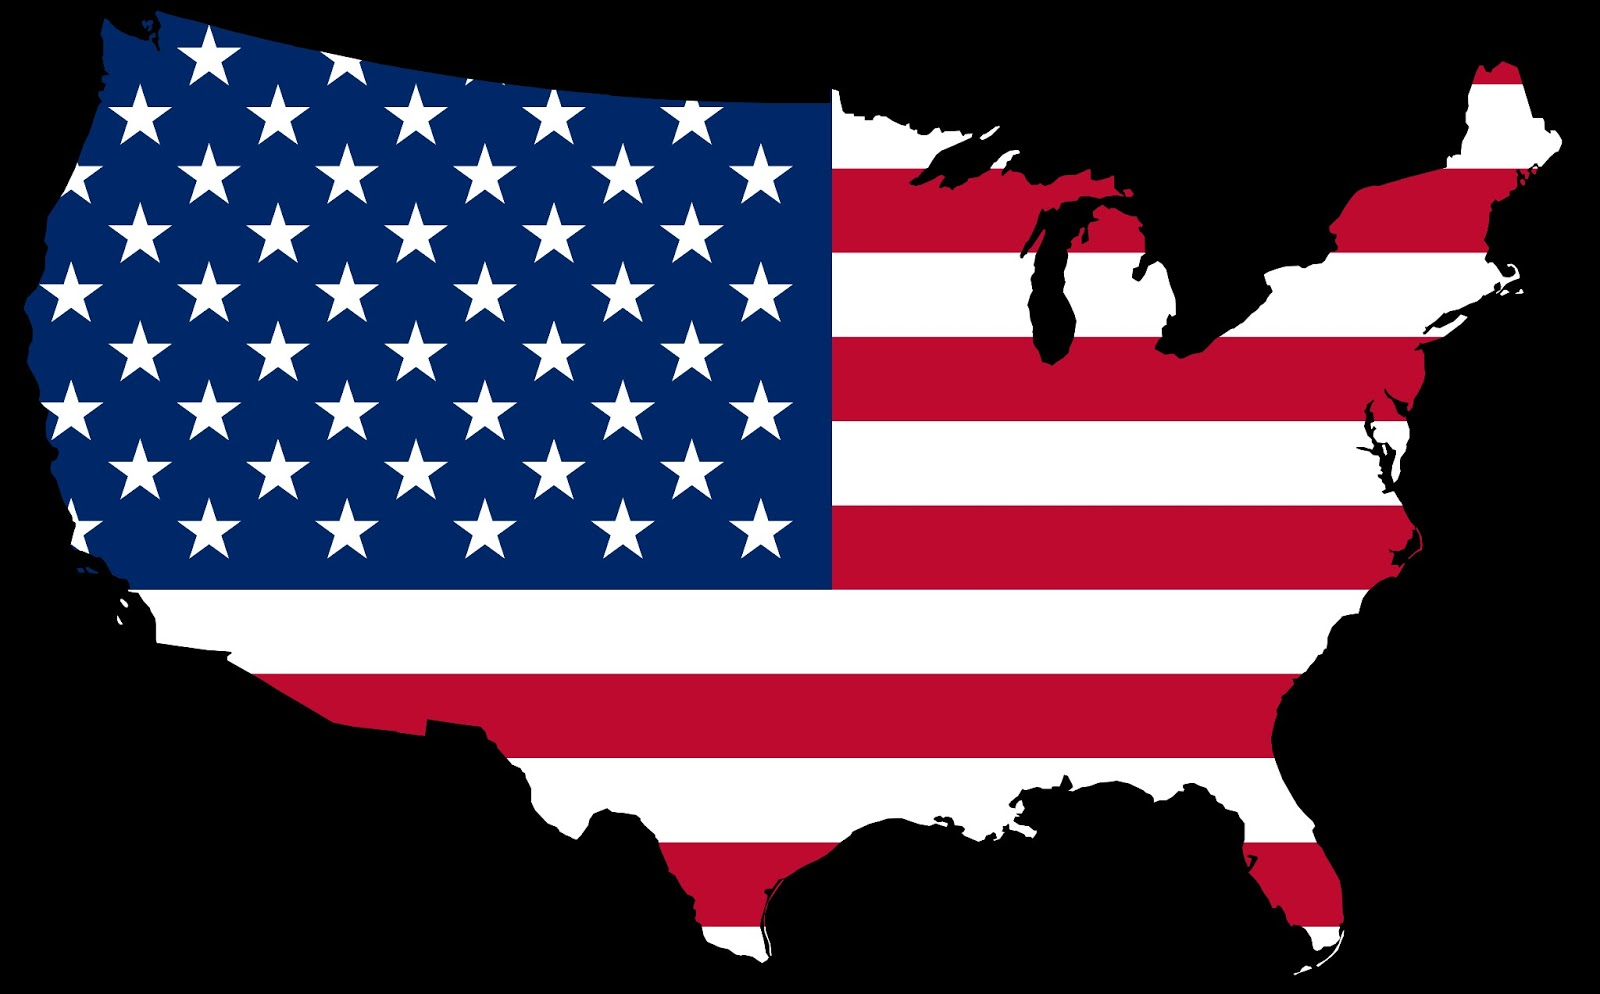 usa flag hd wallpapers download Fine HD Wallpapers   Download 1600x994